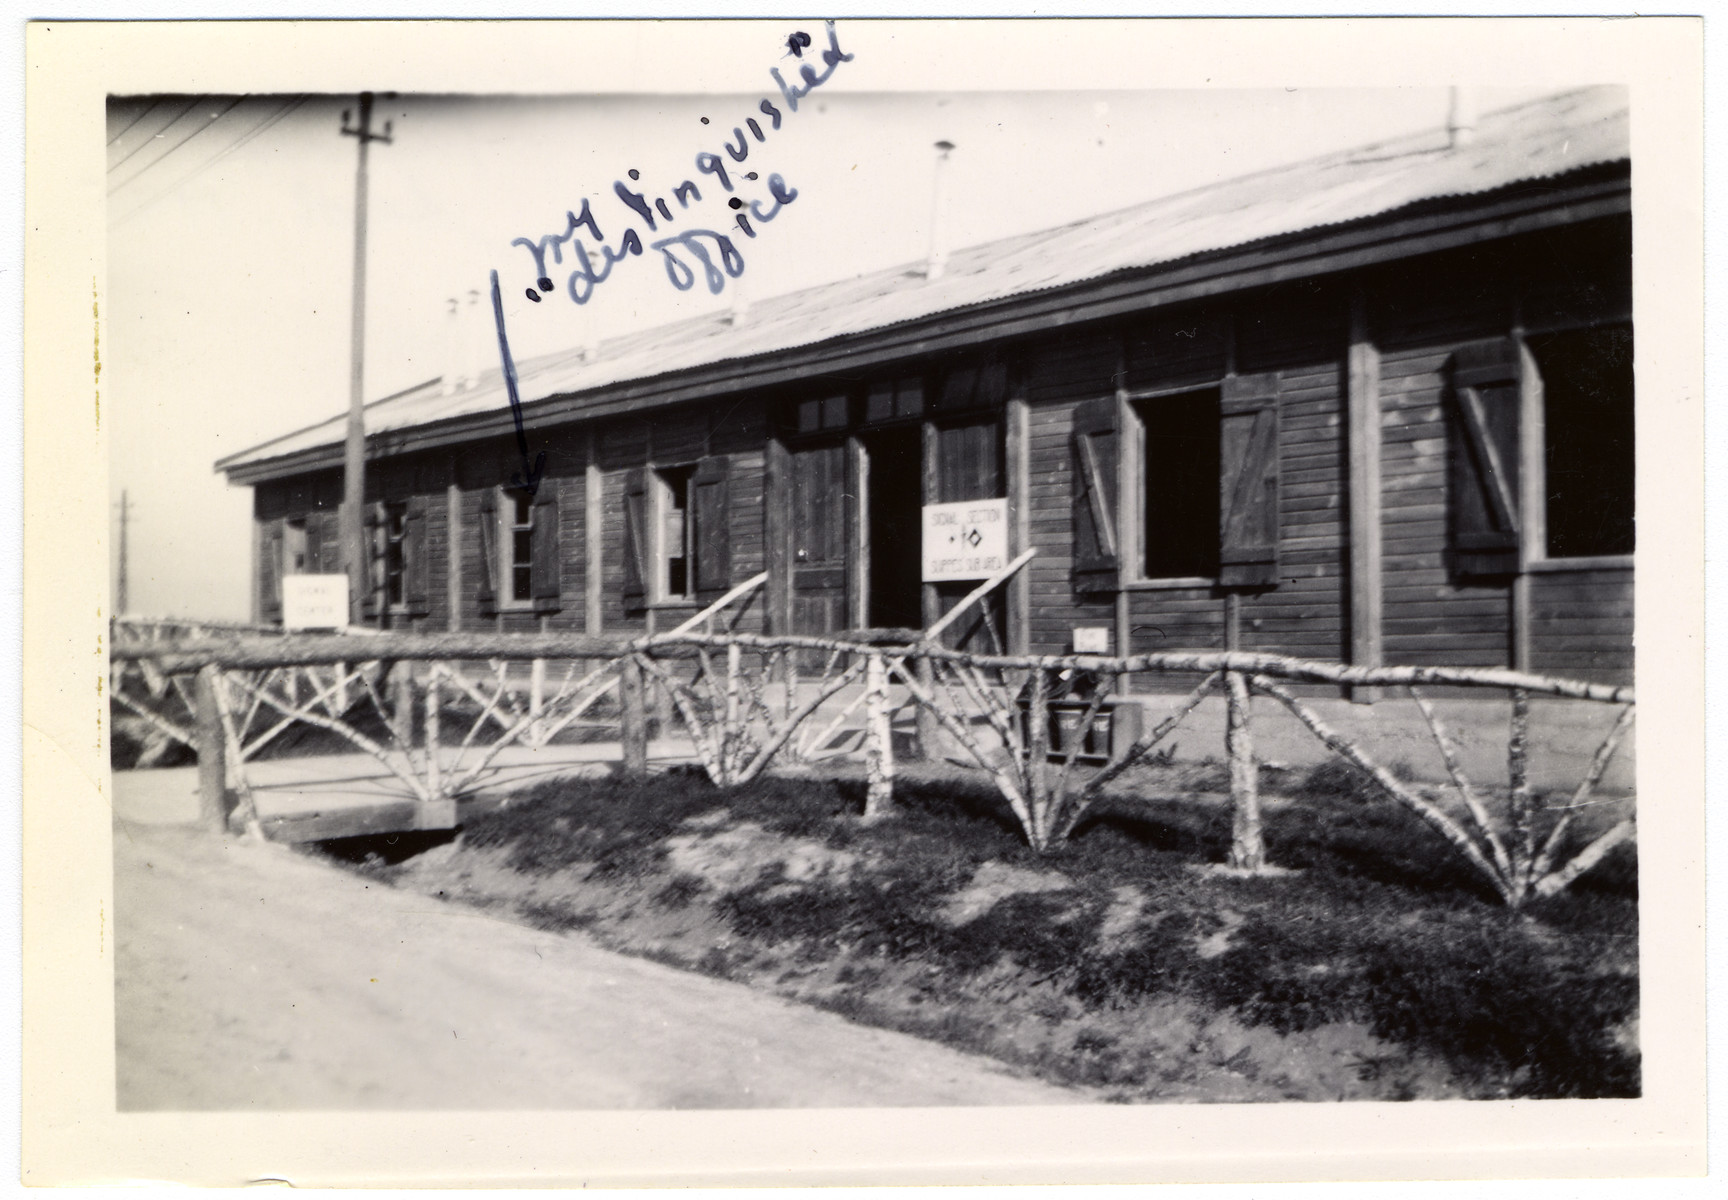 "A shack that housed the offices for the Signal Corps in Suippes, France.  Myron Moses worked there, and in the photo he demarcated the window to his office in the building.  On the back of the photo, Myron has written to his parents:   Mom 'n Dad -- This is our Signal ""shack."" The fancy [underlined in the caption] fence was set up by the POWs, under the architectural direction of Ralph Colton. Love, Myron"